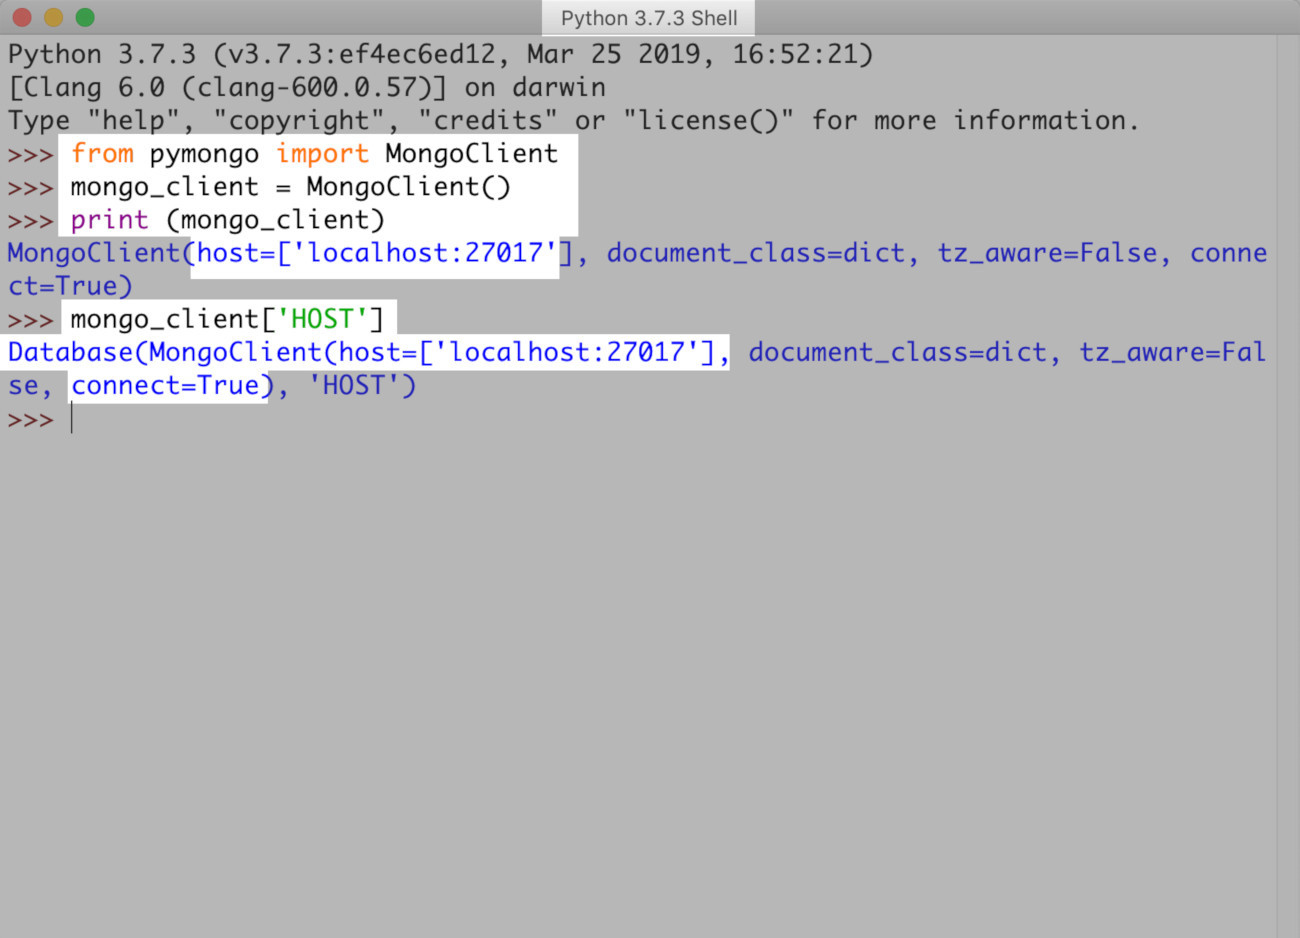 Screenshot of a MongoDB client instance in the IDLE Python environment